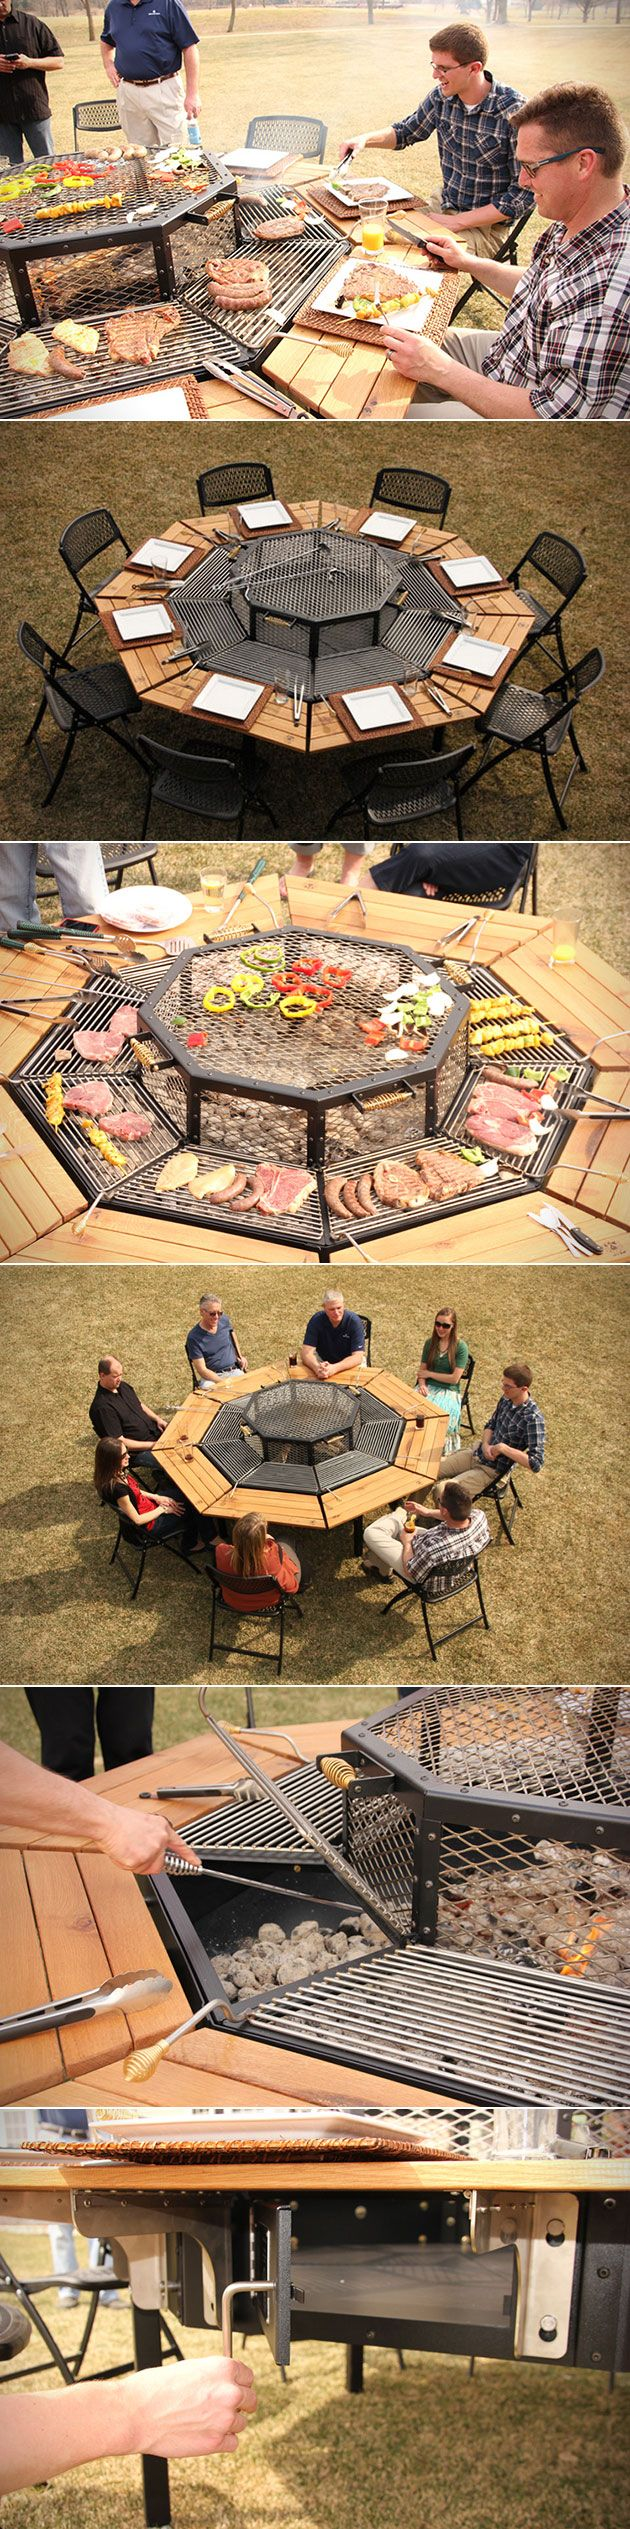 Nothing says summer quite like crowding around the barbecue with friends and family, and the Jag Grill looks to bring on a whole new meaning to the idea.  Shaped like a giant octagon, the Jag is like a communal grilling station. Not only is there a massive grilling area in the center, but there are also eight different individual grilling stations for all your guests. In addition to the private grilling areas, there's also a wooden table-top to enjoy your barbecued meats and veggies.